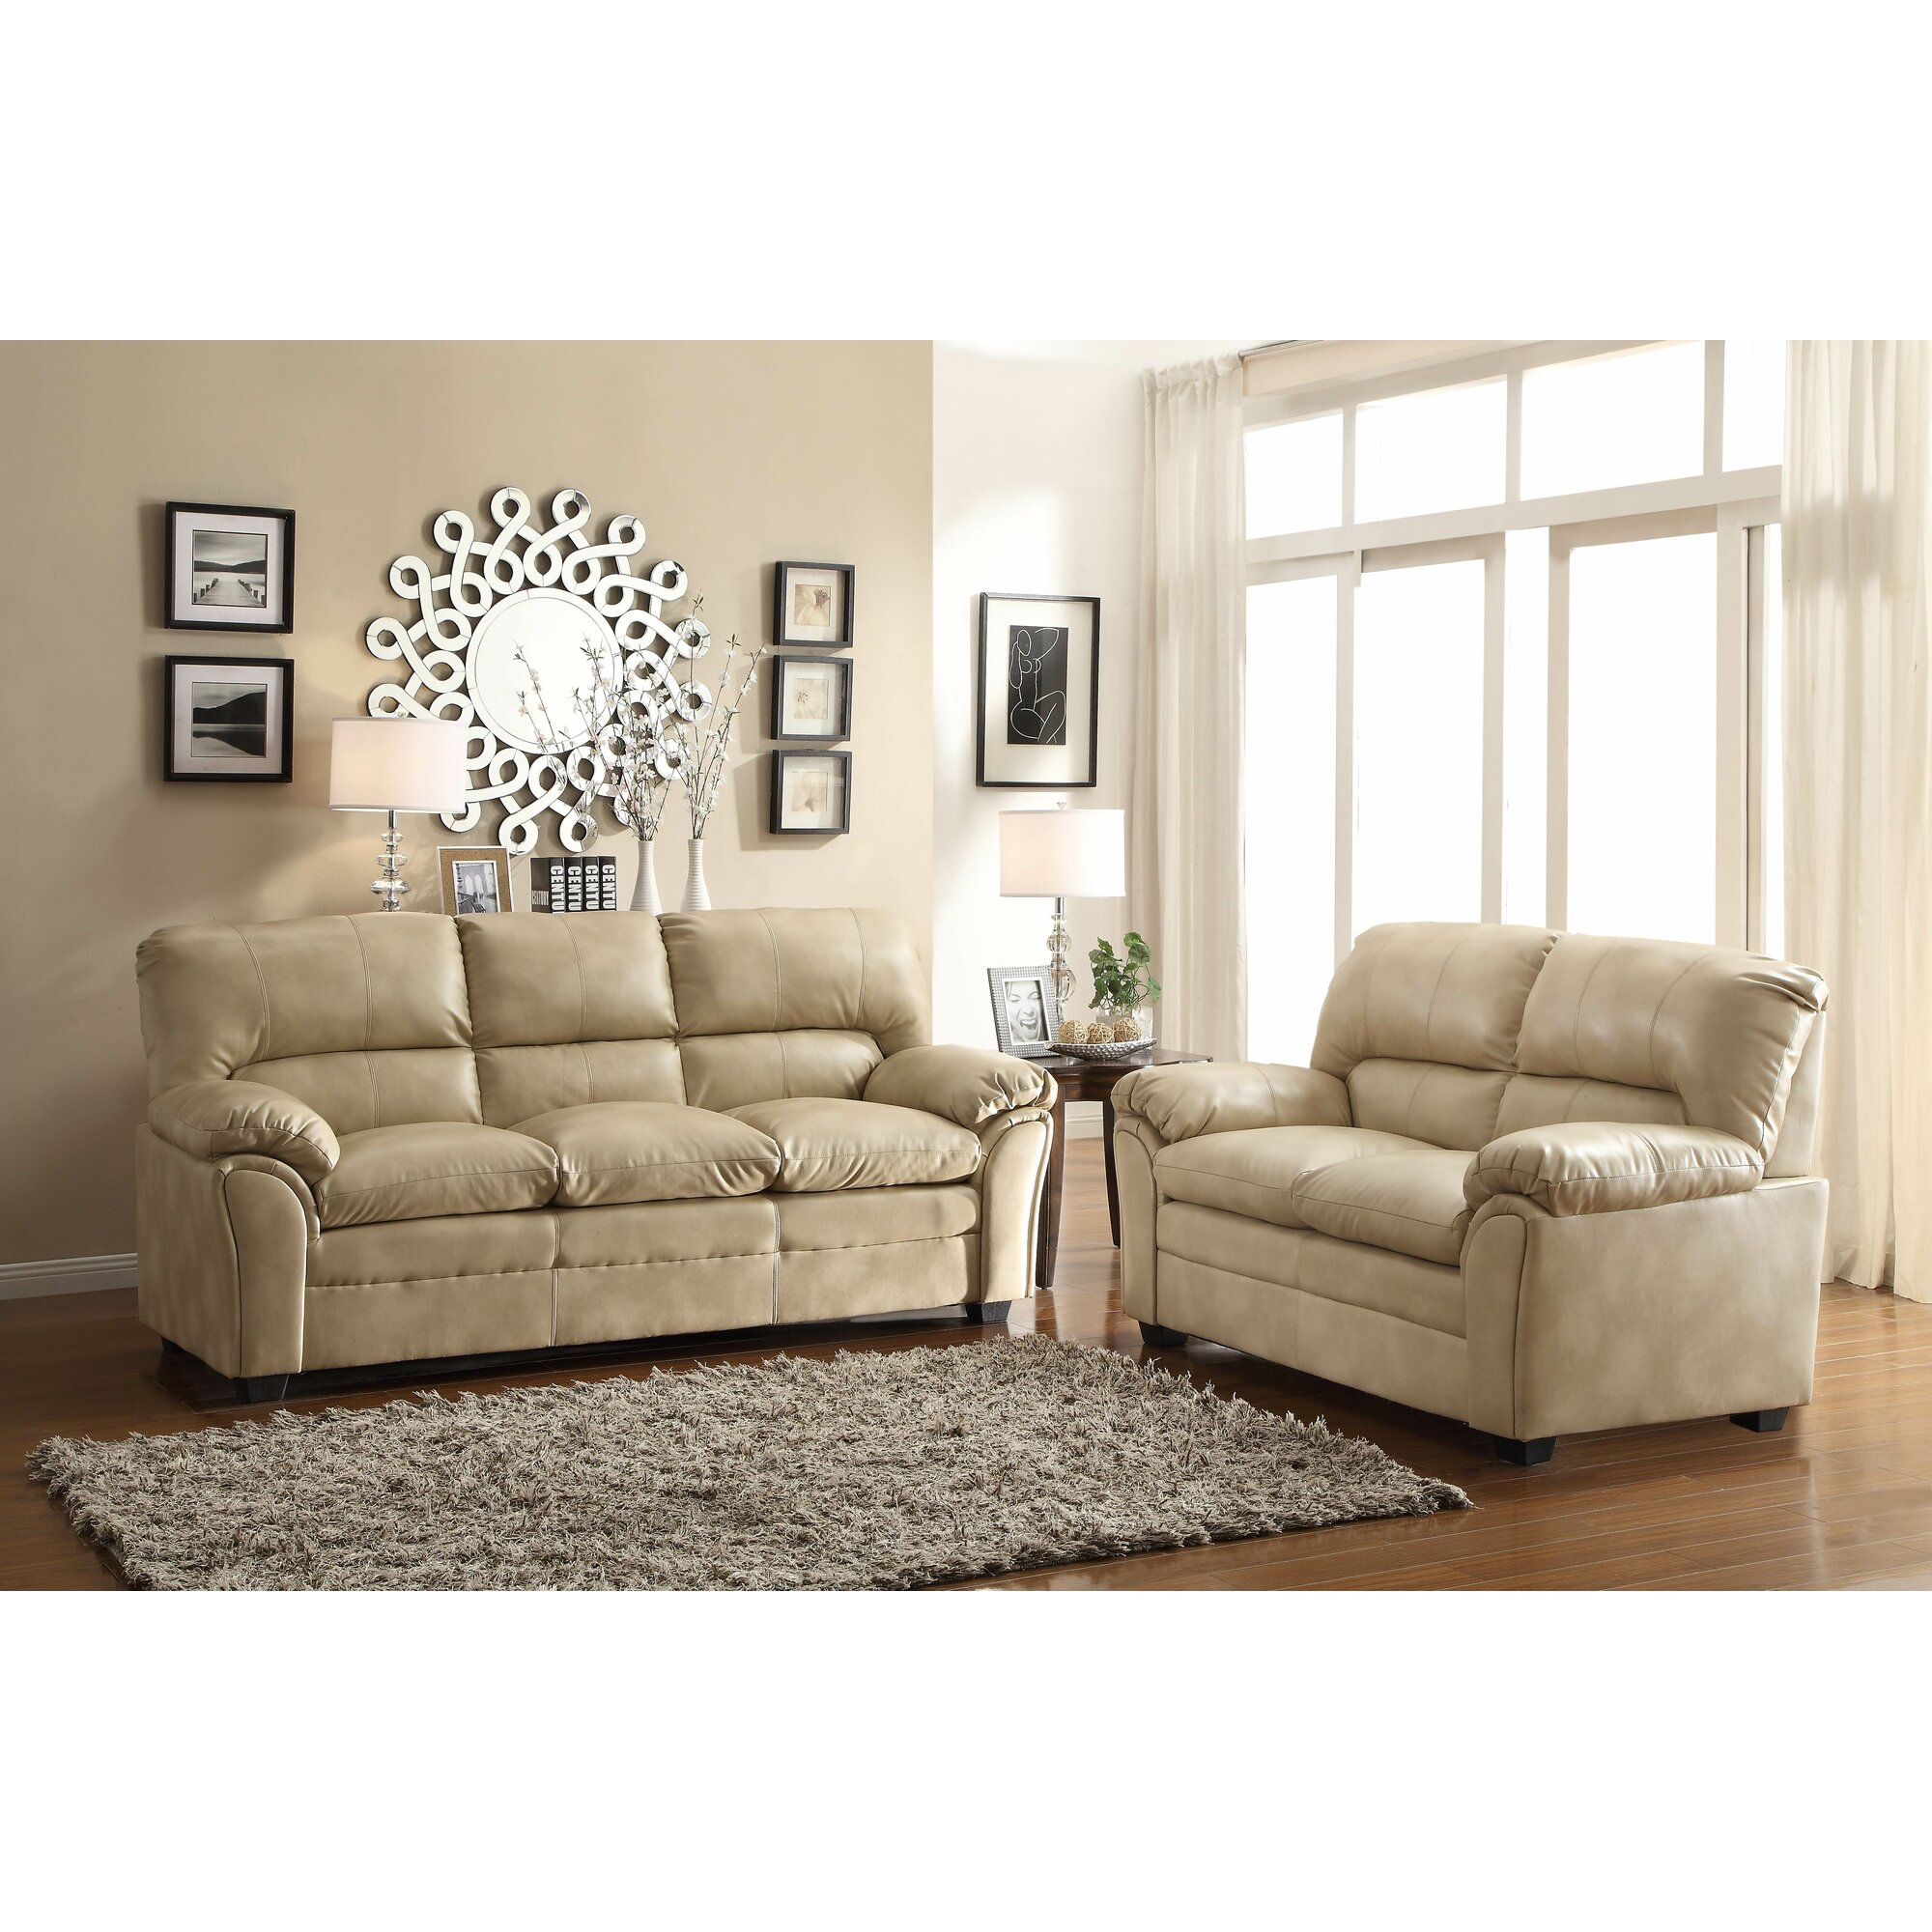 woodhaven hill talon living room collection reviews. Black Bedroom Furniture Sets. Home Design Ideas